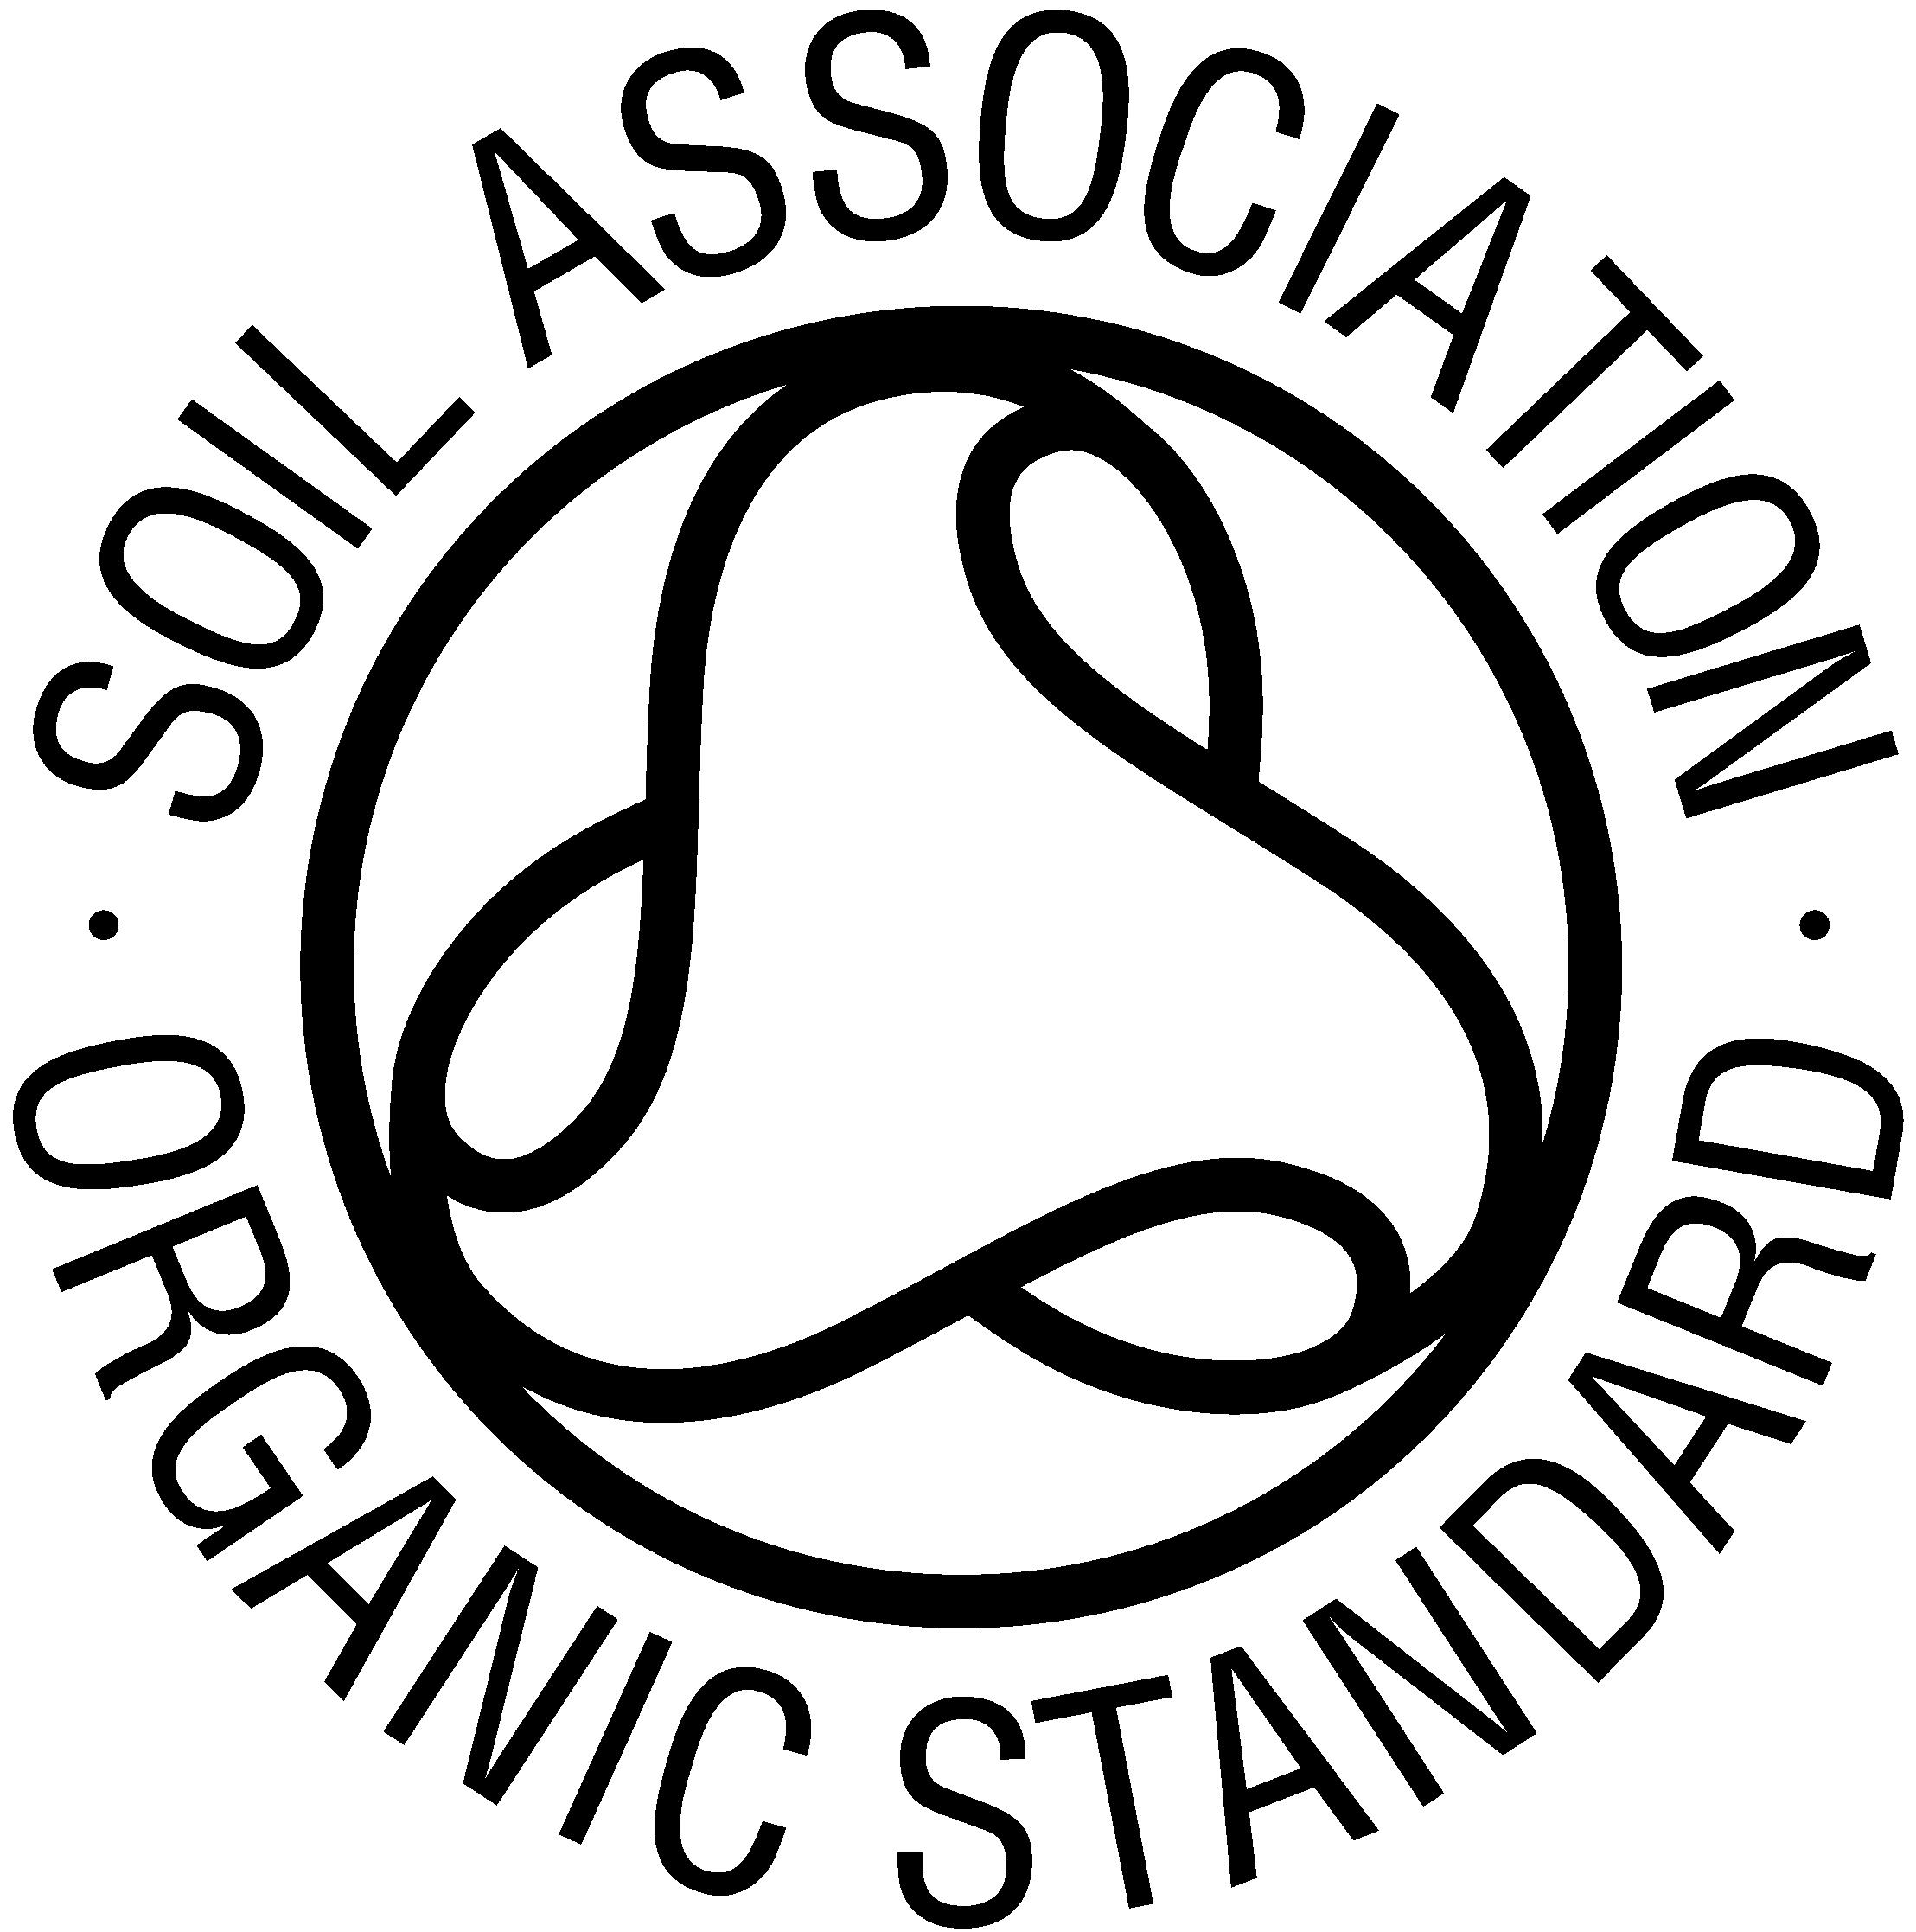 Soil_Association_logo-jpeg.jpg